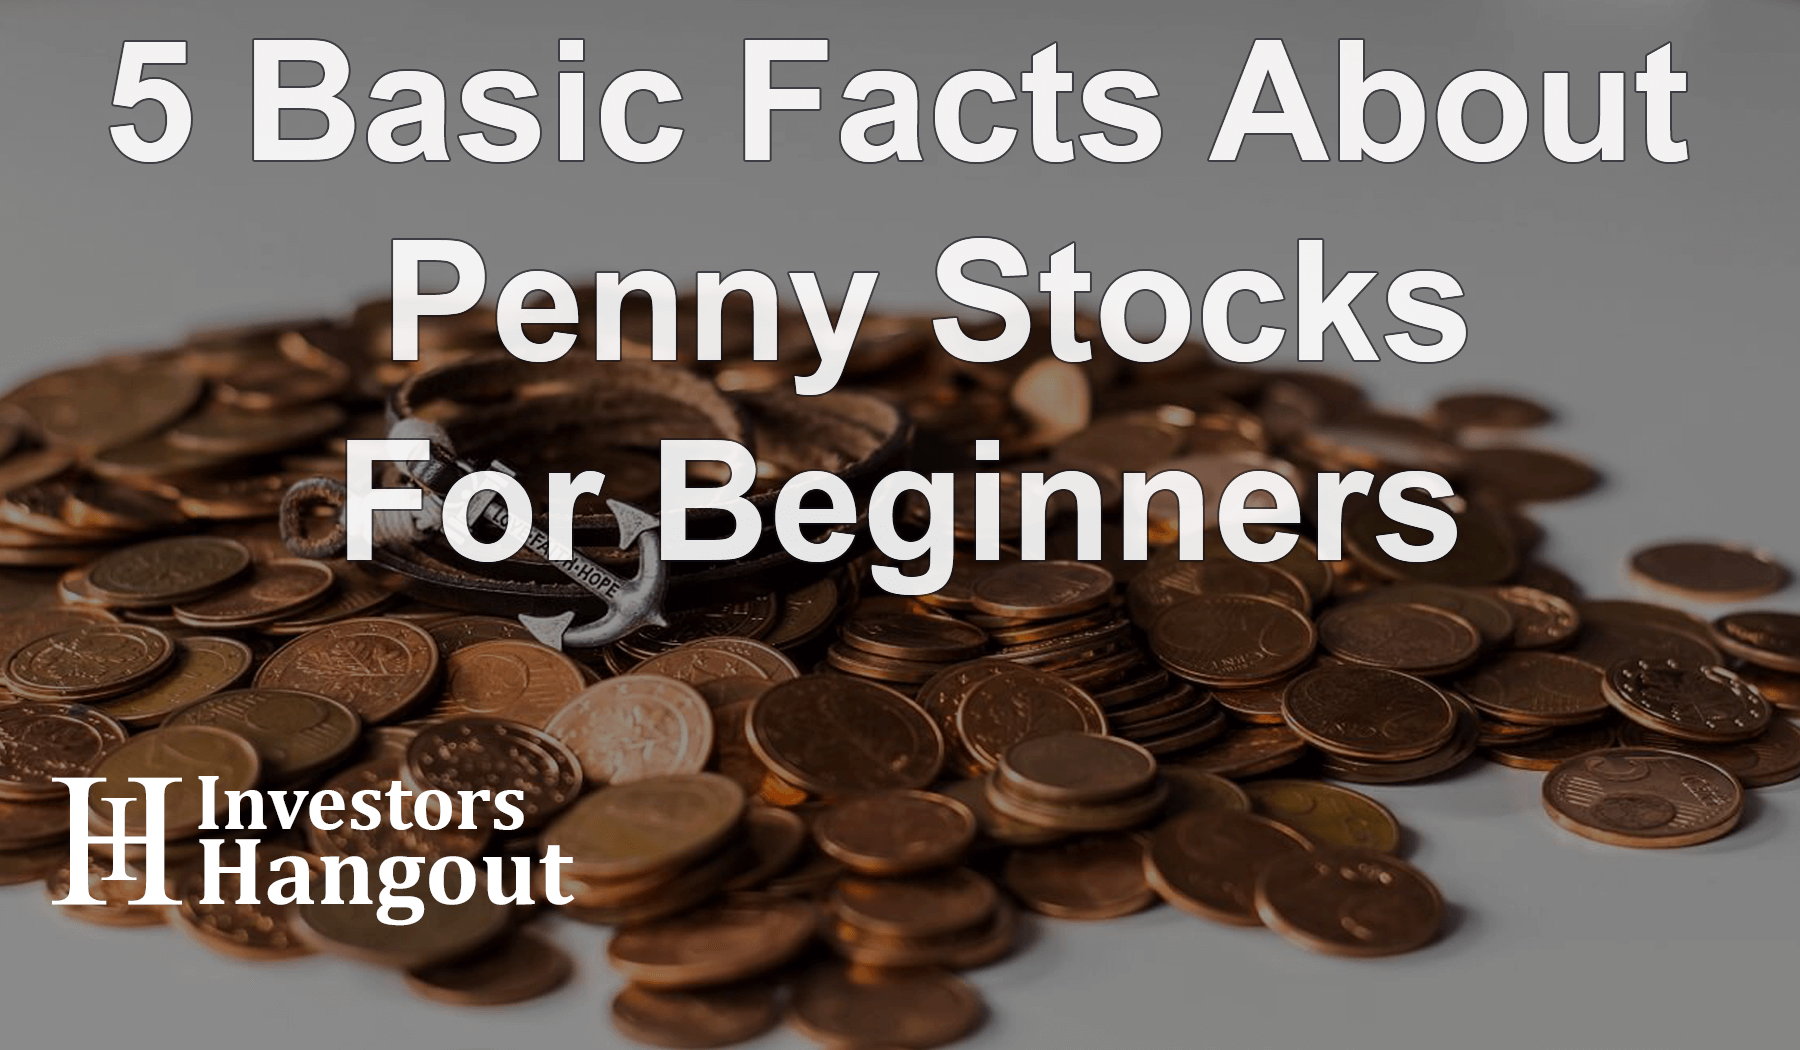 5 Basic Facts About Penny Stocks For Beginners